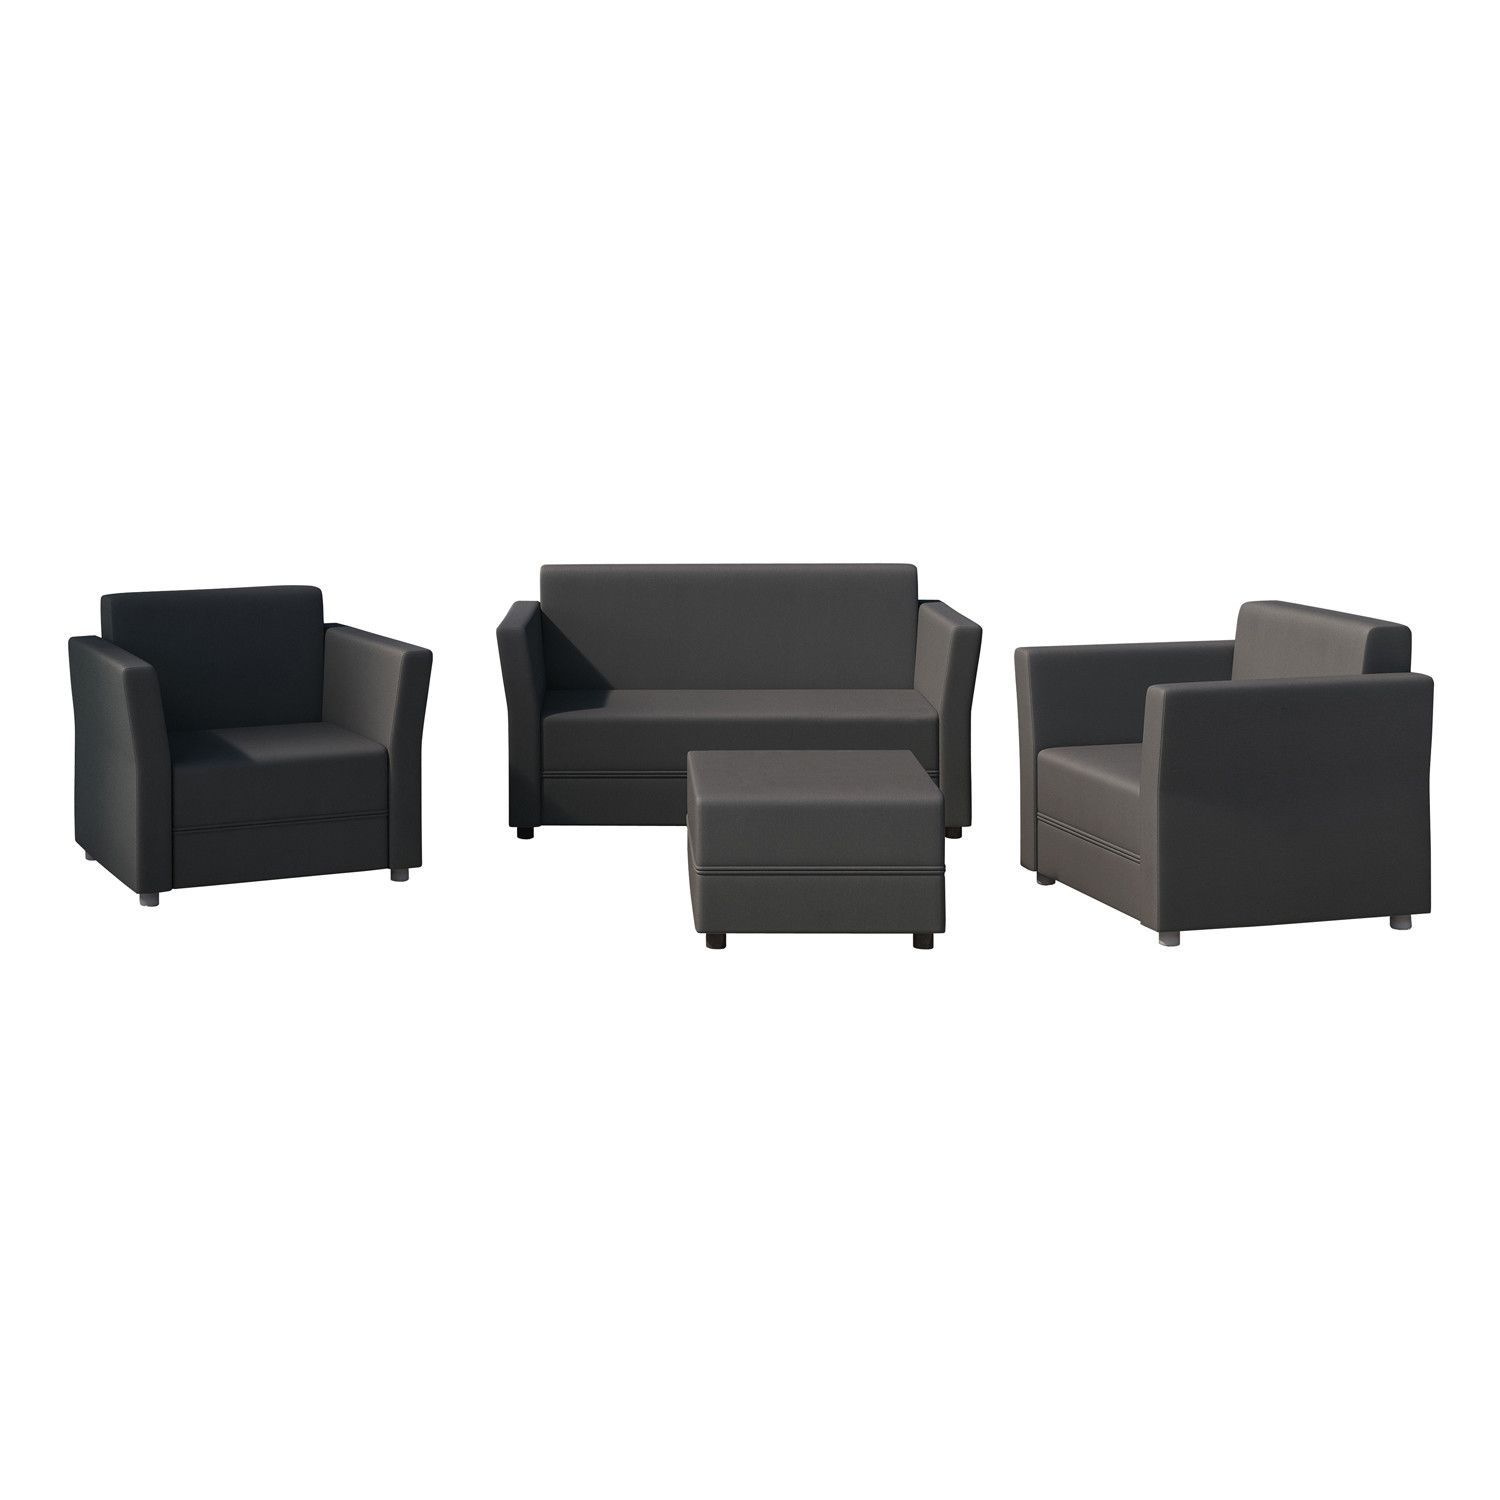 Verona 4 Piece Sofa Set with Cushions